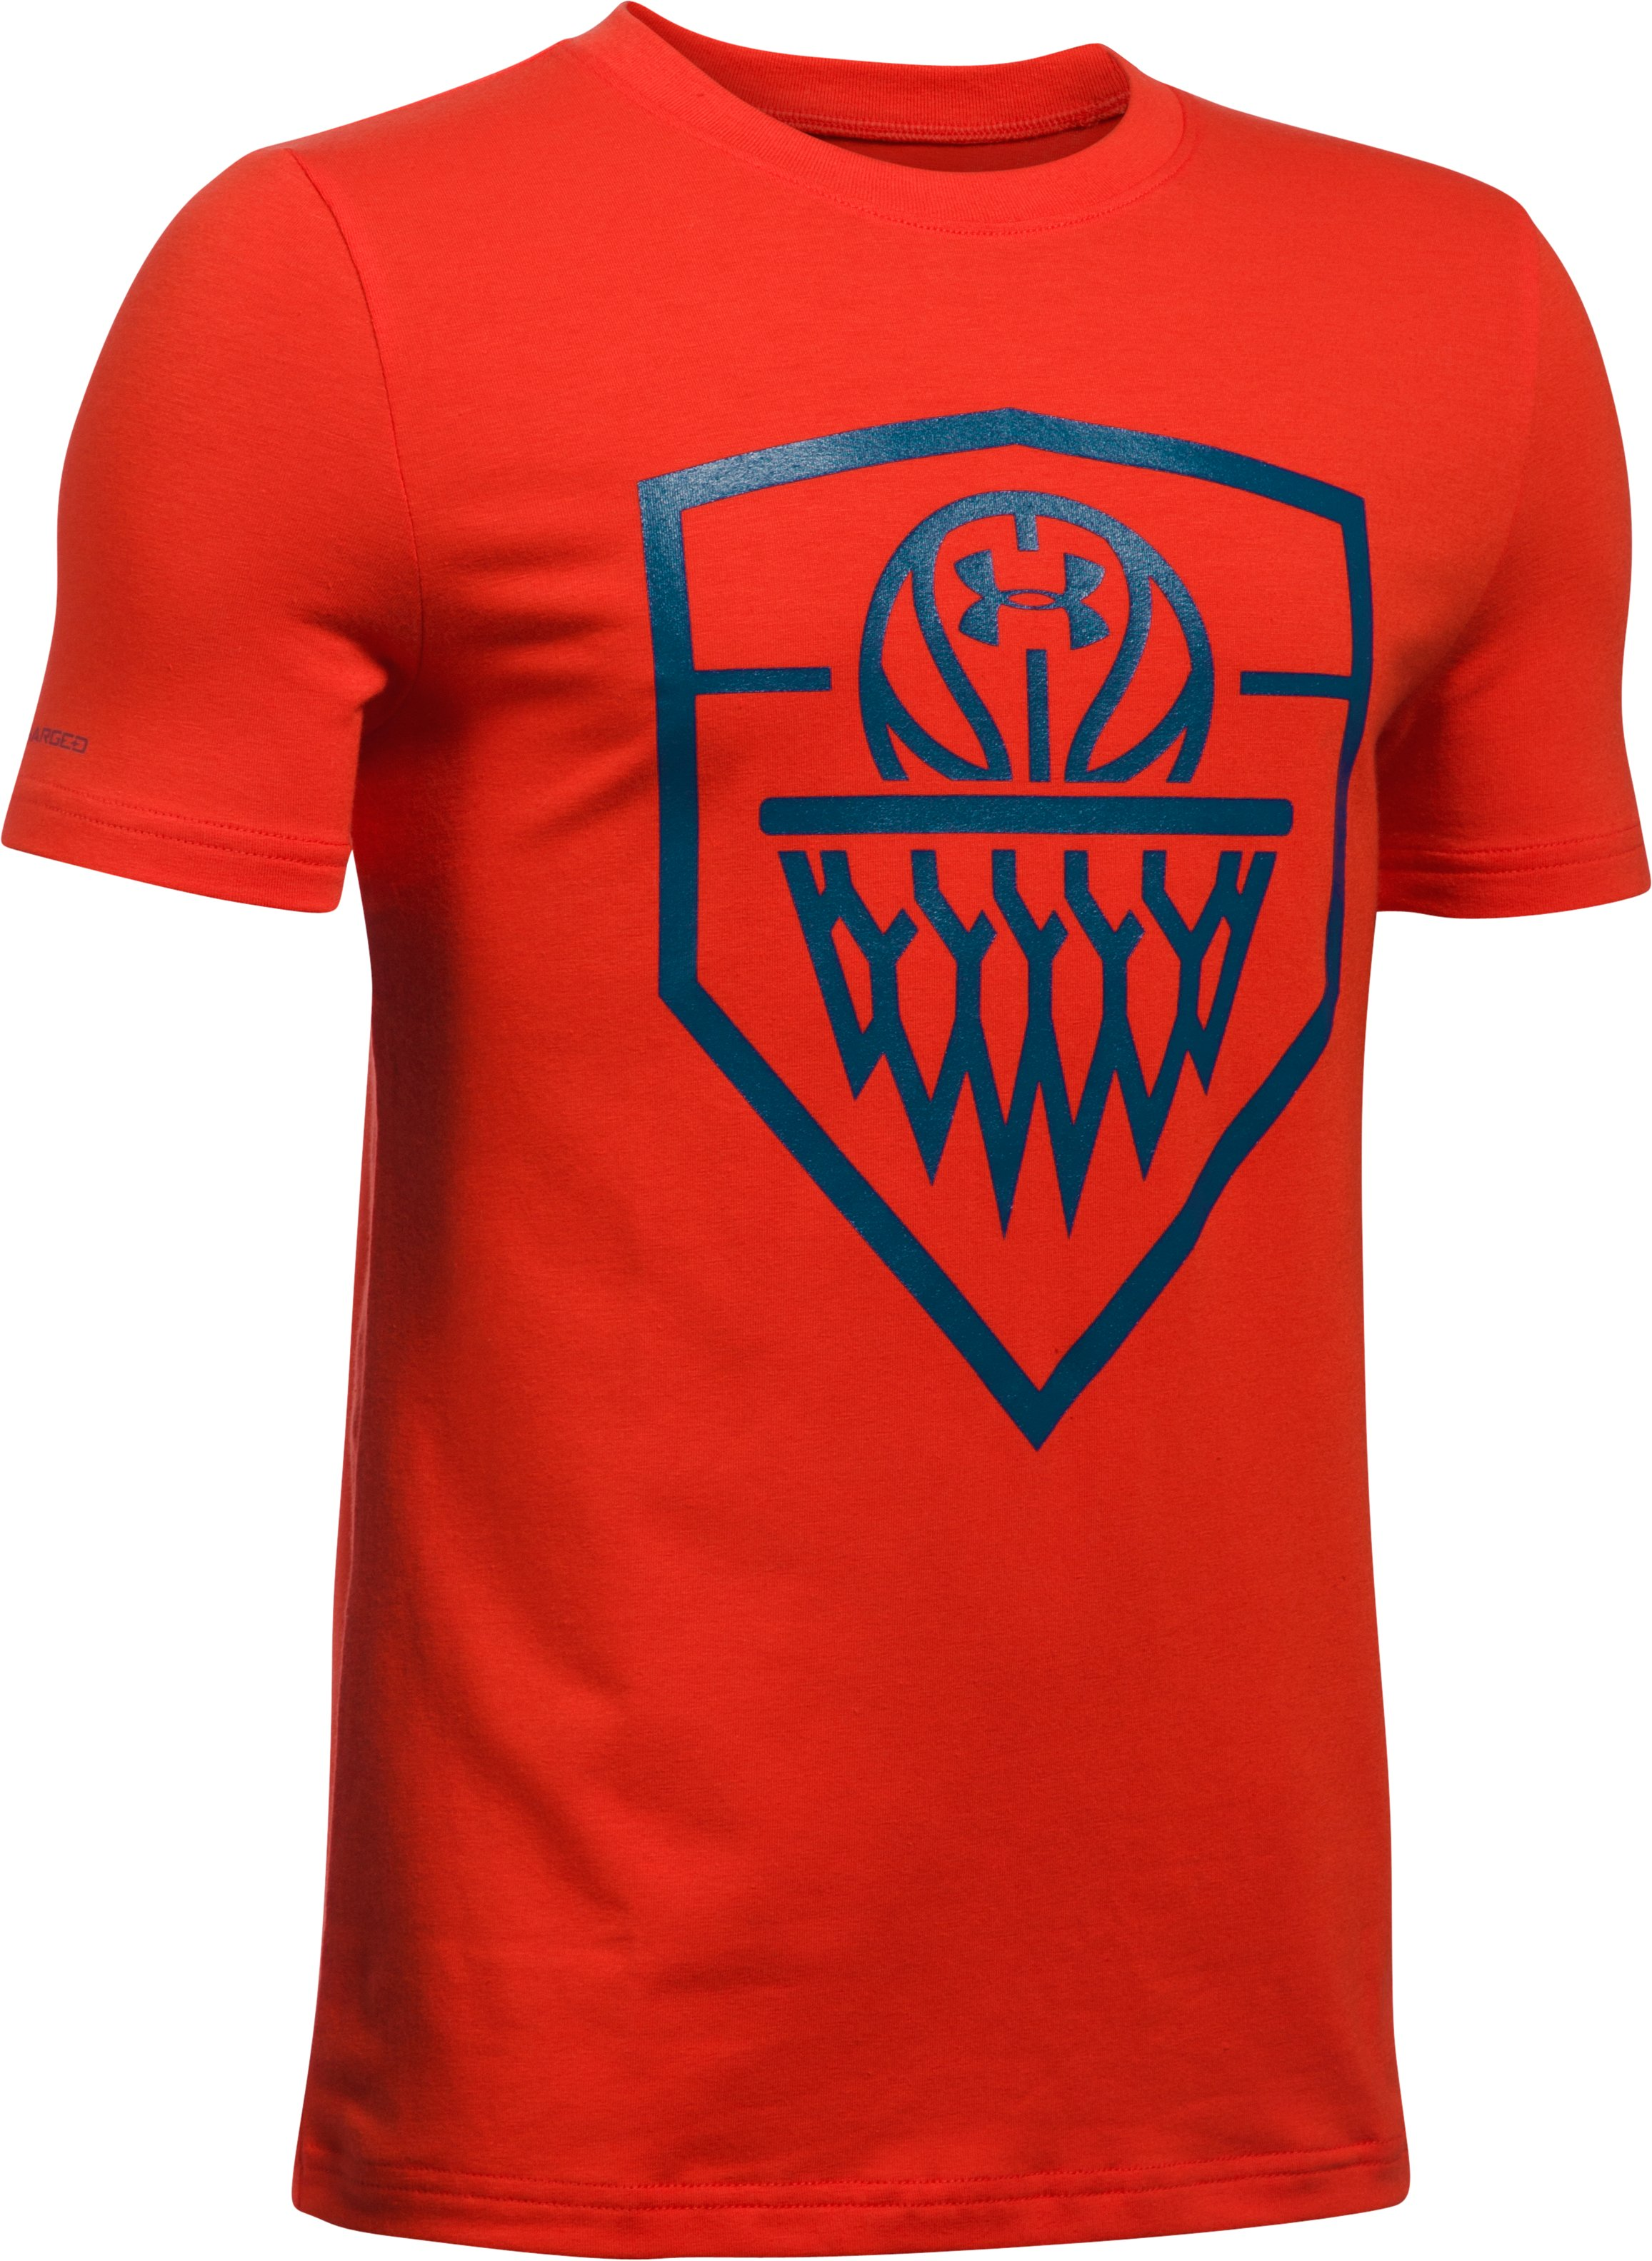 Boys' UA Basketball Badge T-Shirt, Dark Orange